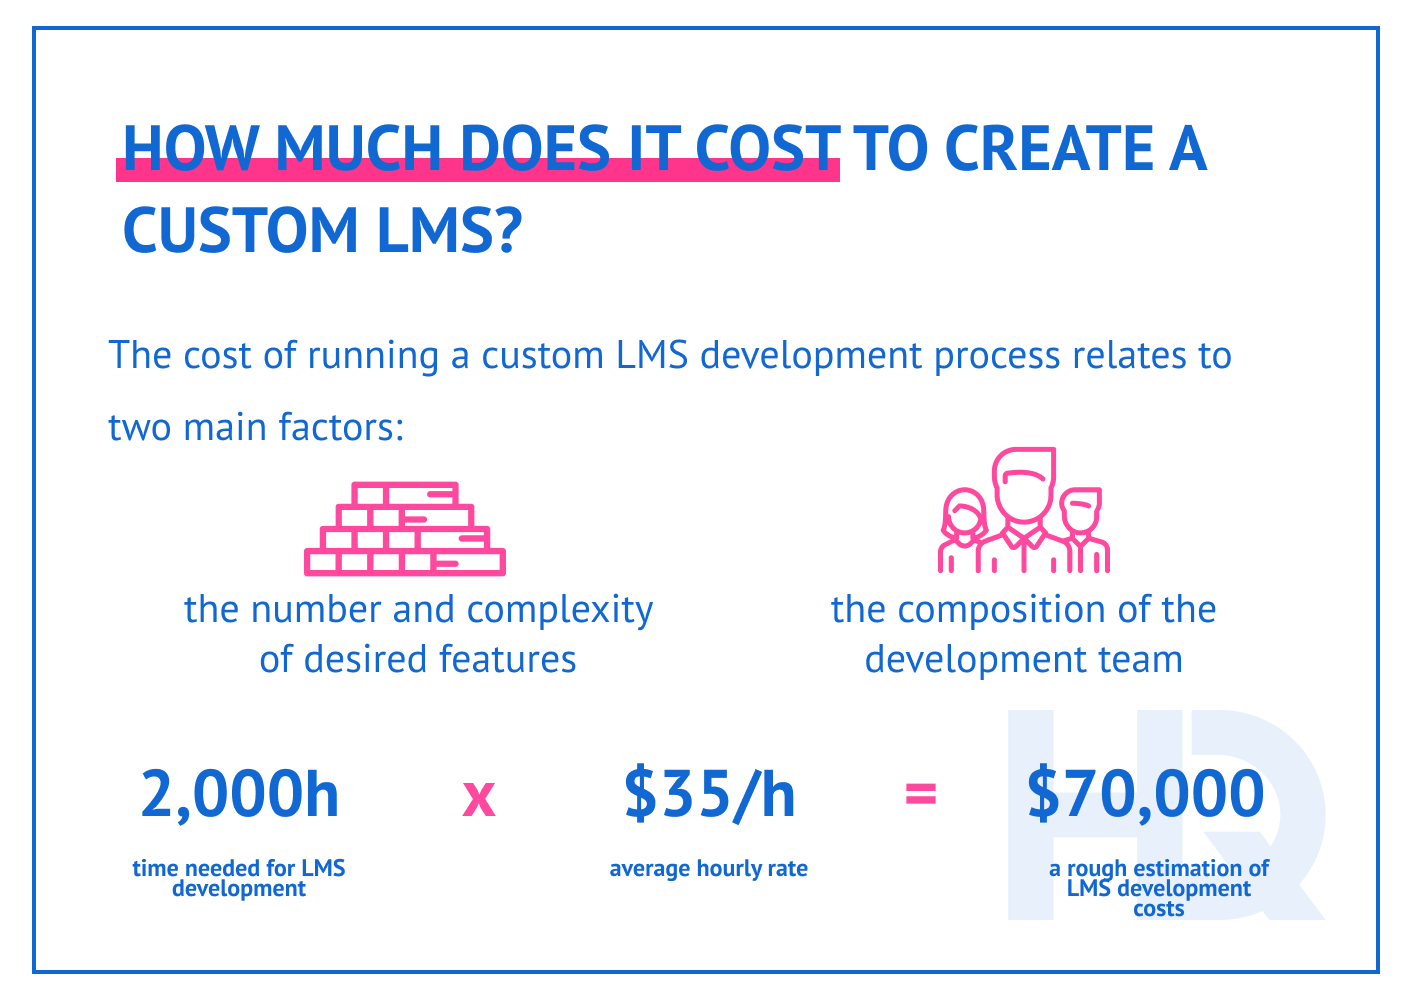 How much does it cost to create a custom LMS?